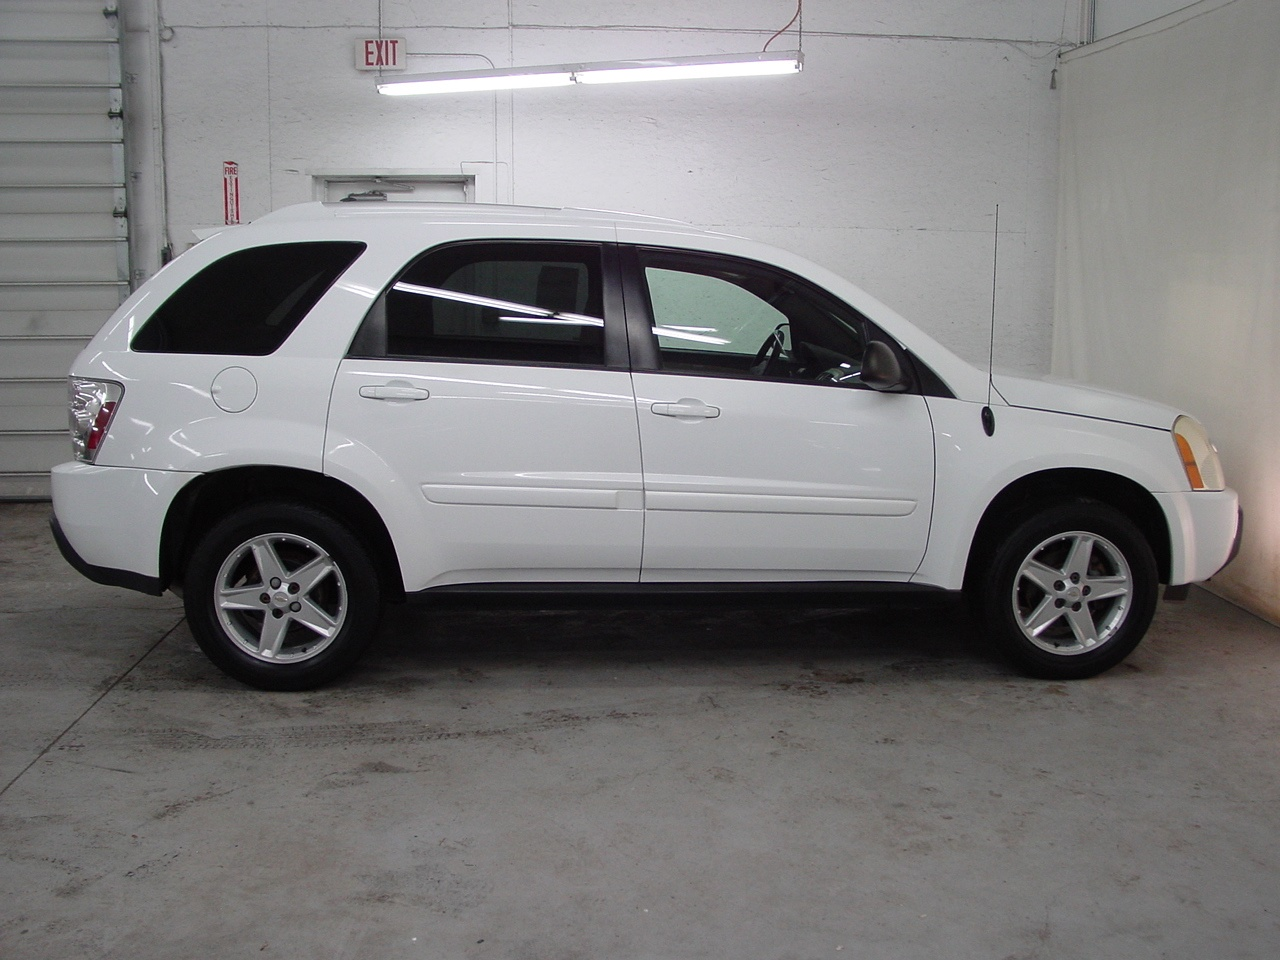 Equinox 2005 chevrolet equinox for sale : 2005 Chevrolet Equinox LT - Biscayne Auto Sales | Pre-owned ...